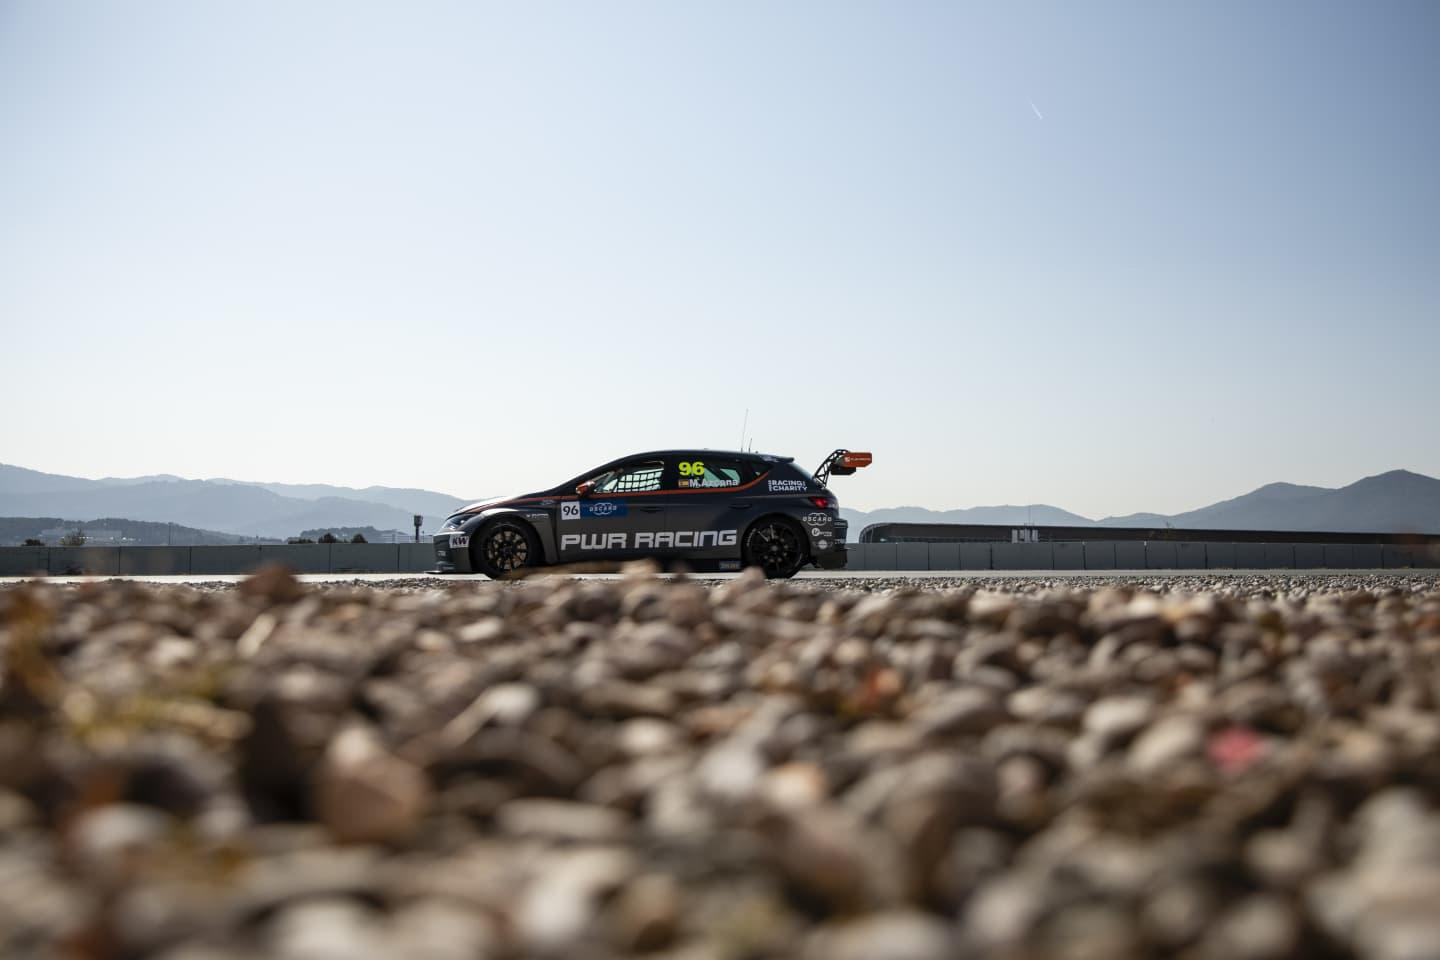 mikel-azcona-perspectiva-test-wtcr-barcelona-2019